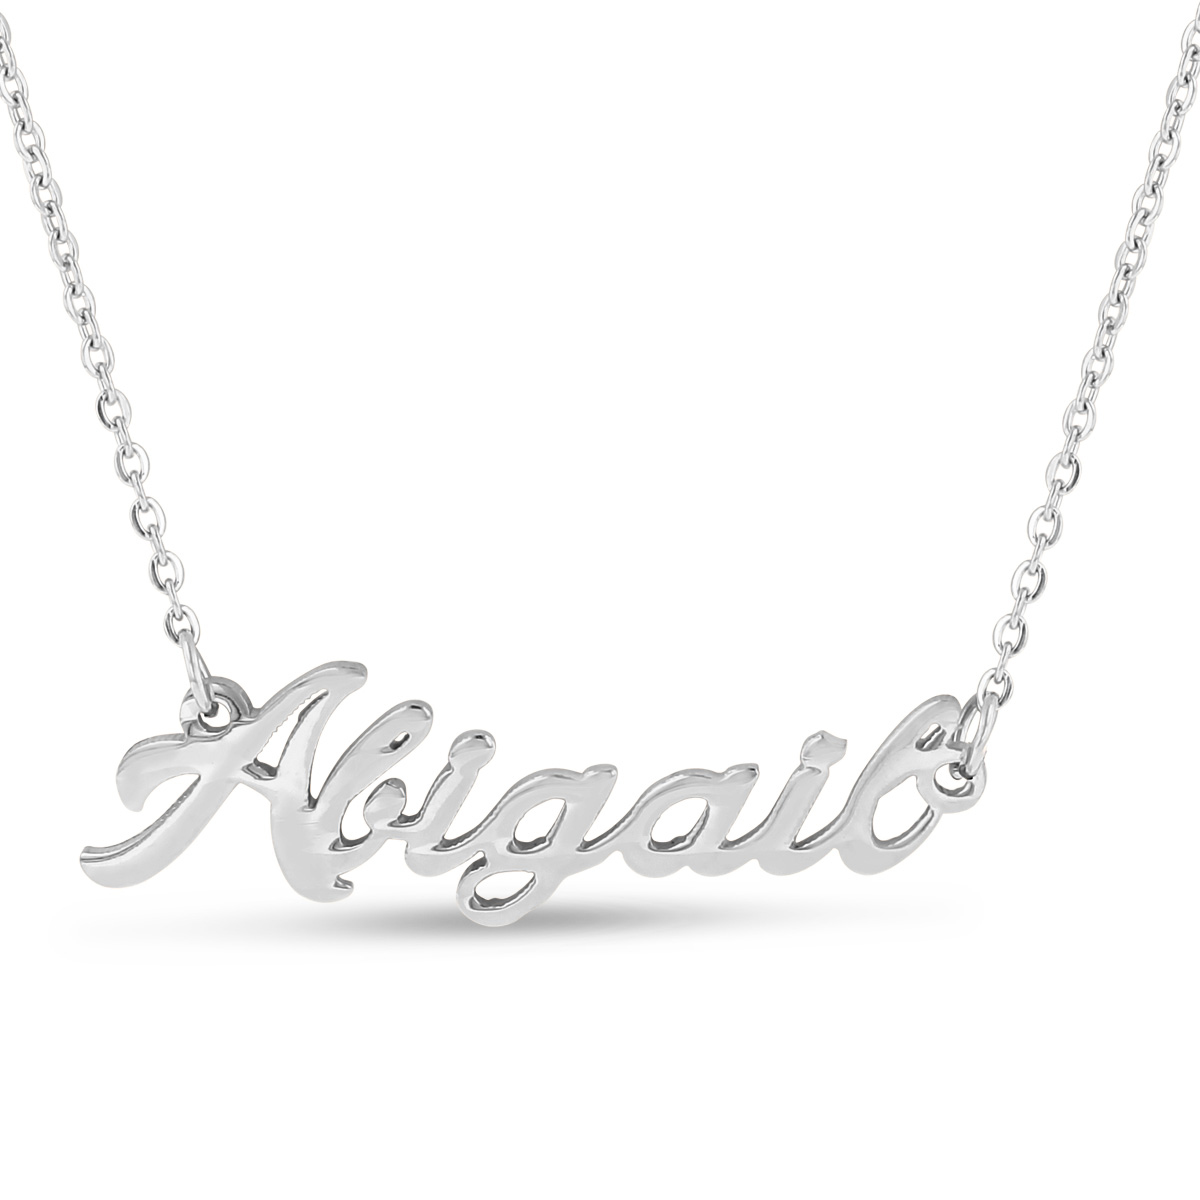 Personalized name necklace silvergold plated 100 names personalized name necklace silver gold plated 100 names aloadofball Images